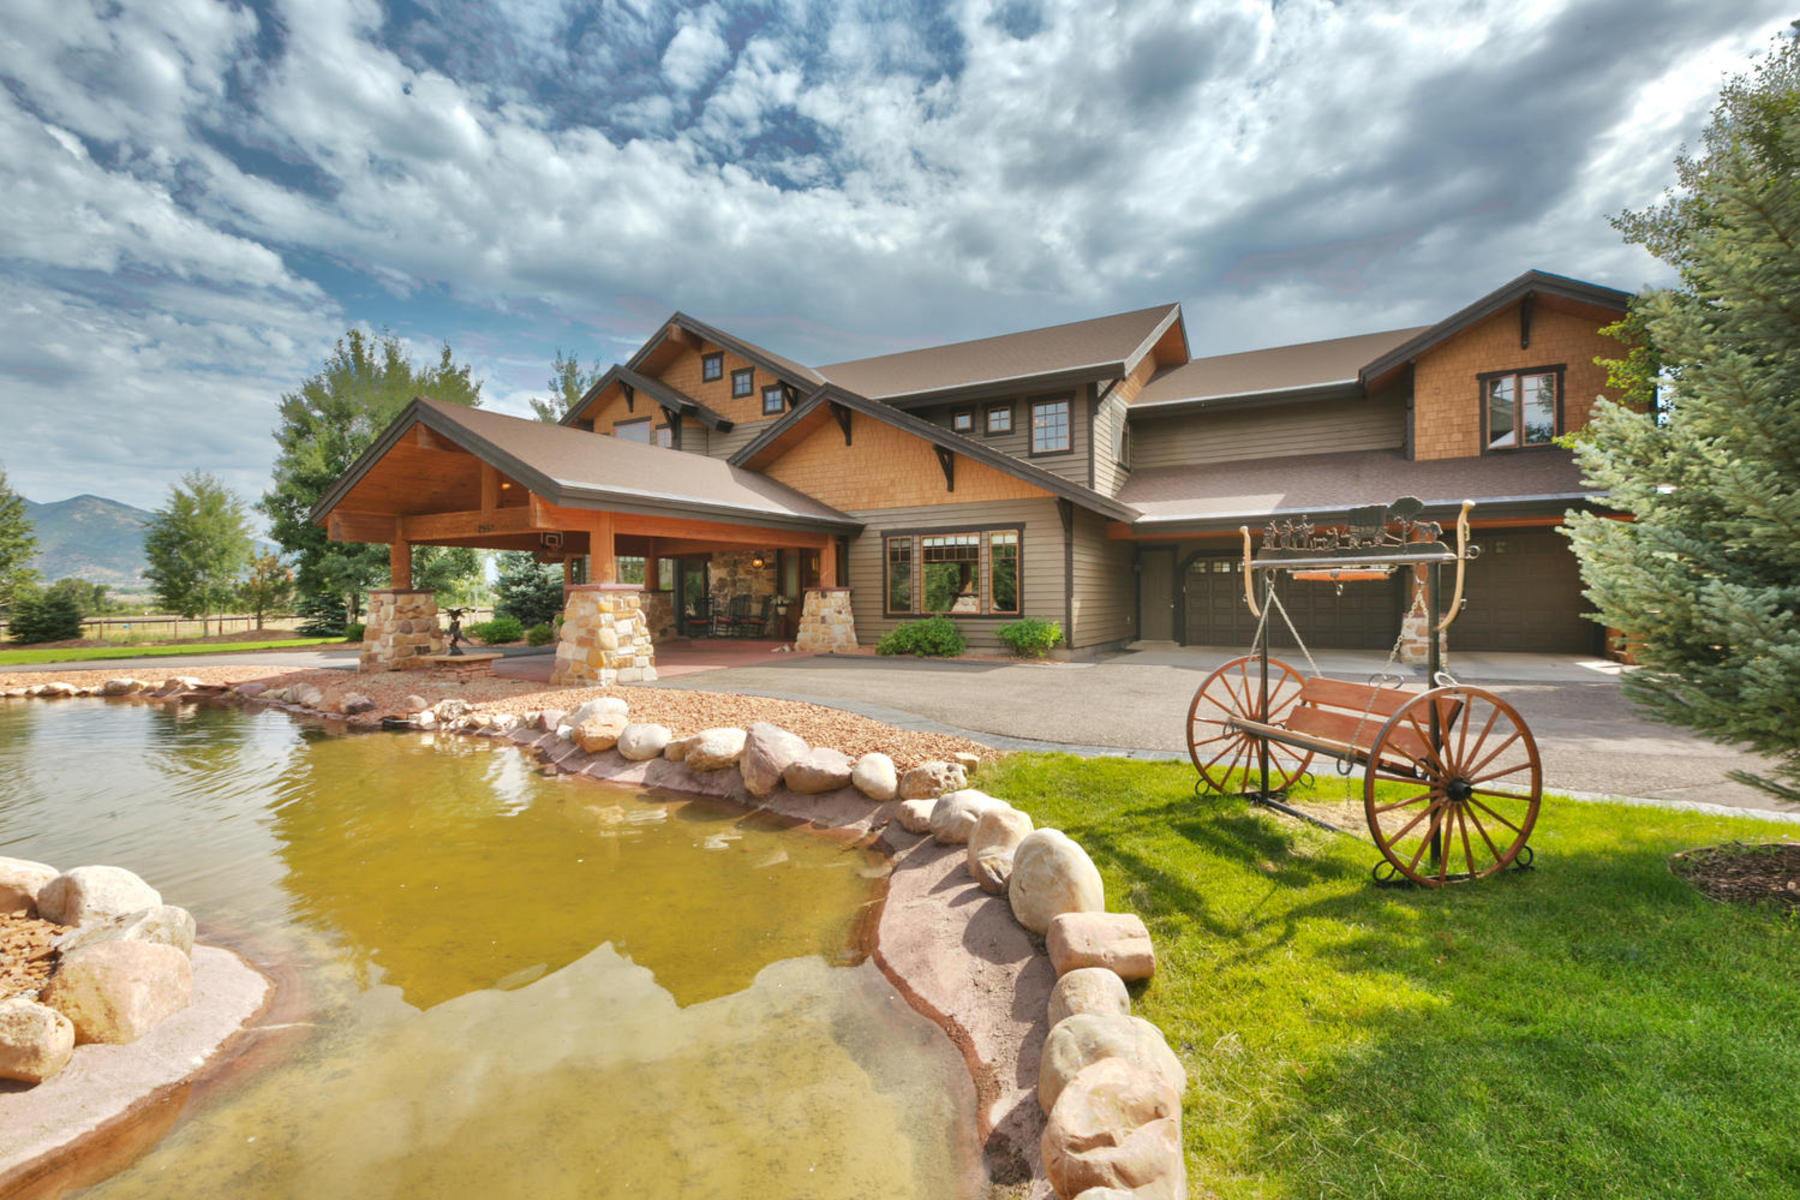 Villa per Vendita alle ore Lovely & Hard to find 4 Acre Horse Ranch w/Barn & Mother-in-law in Charleston 2957 West Winterton Rd Charleston, Utah 84032 Stati Uniti